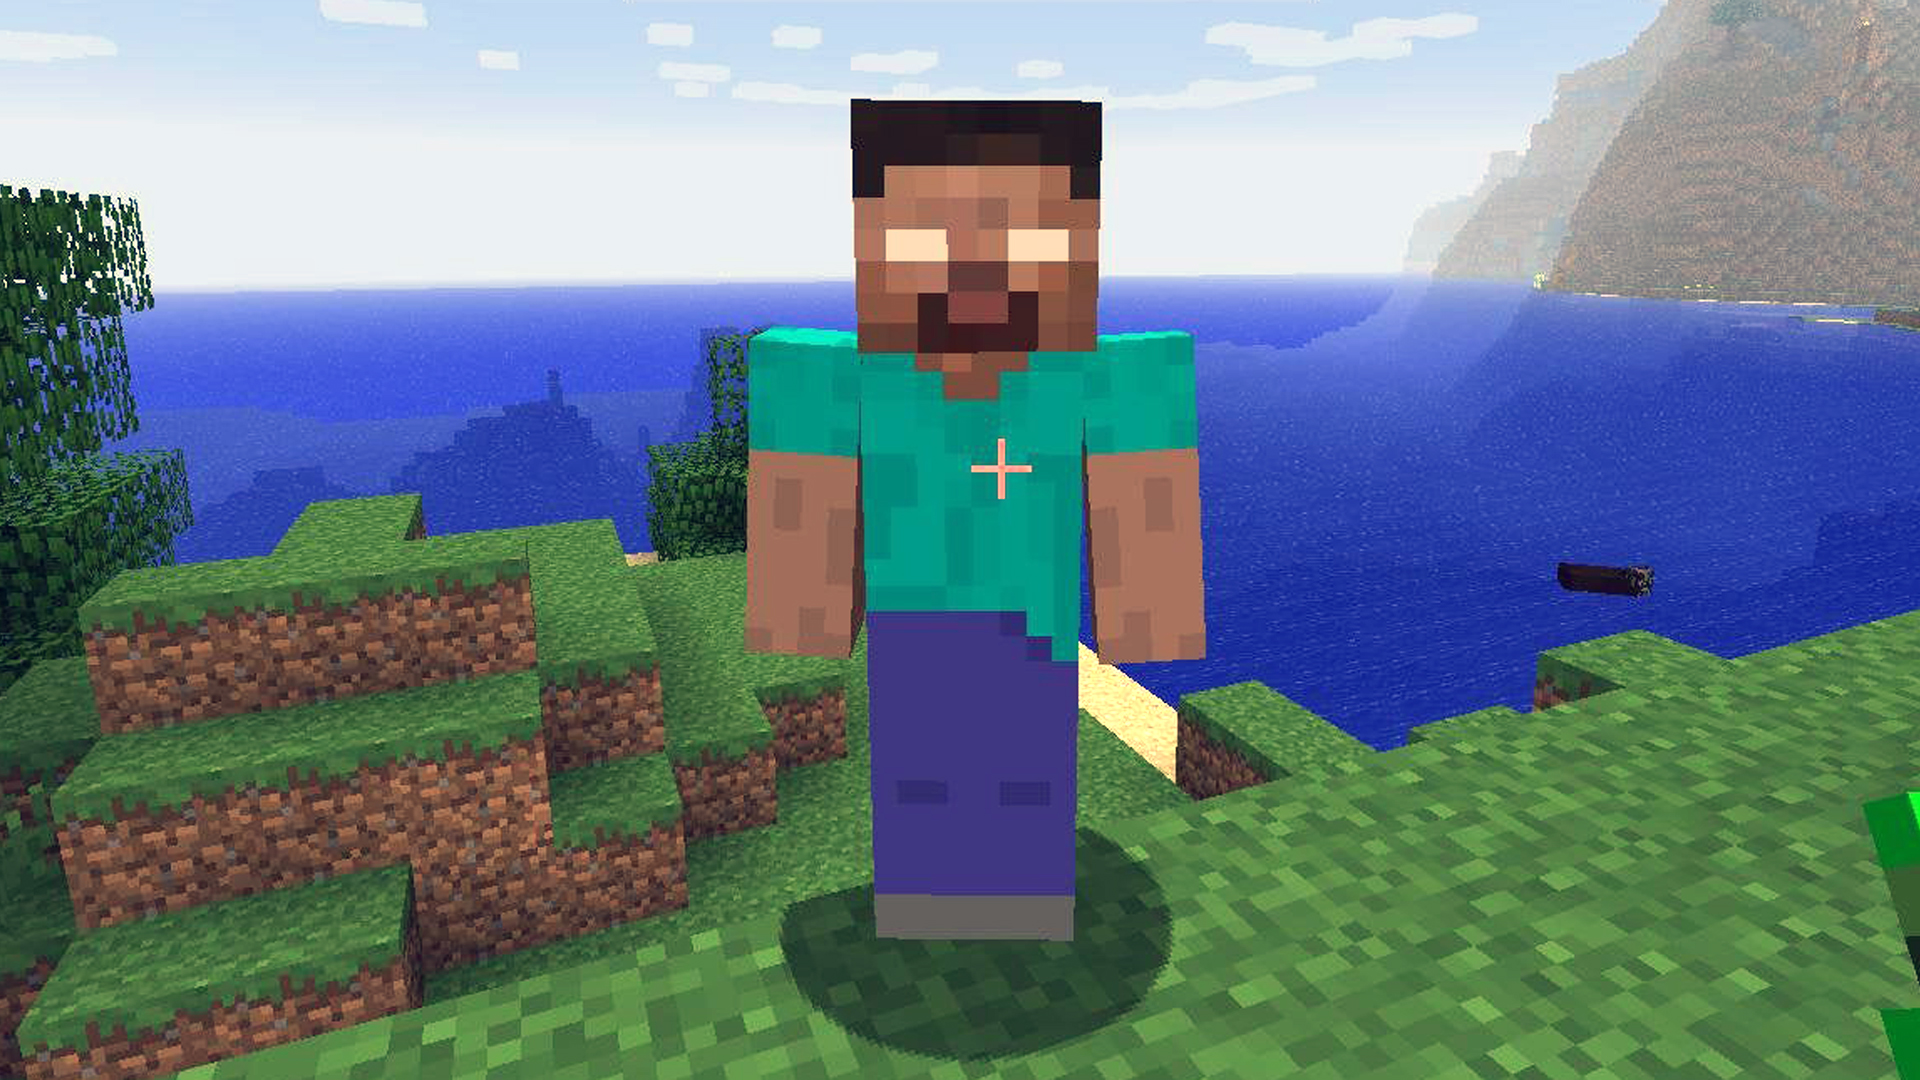 A rare version of Minecraft has been rediscovered 10 years later